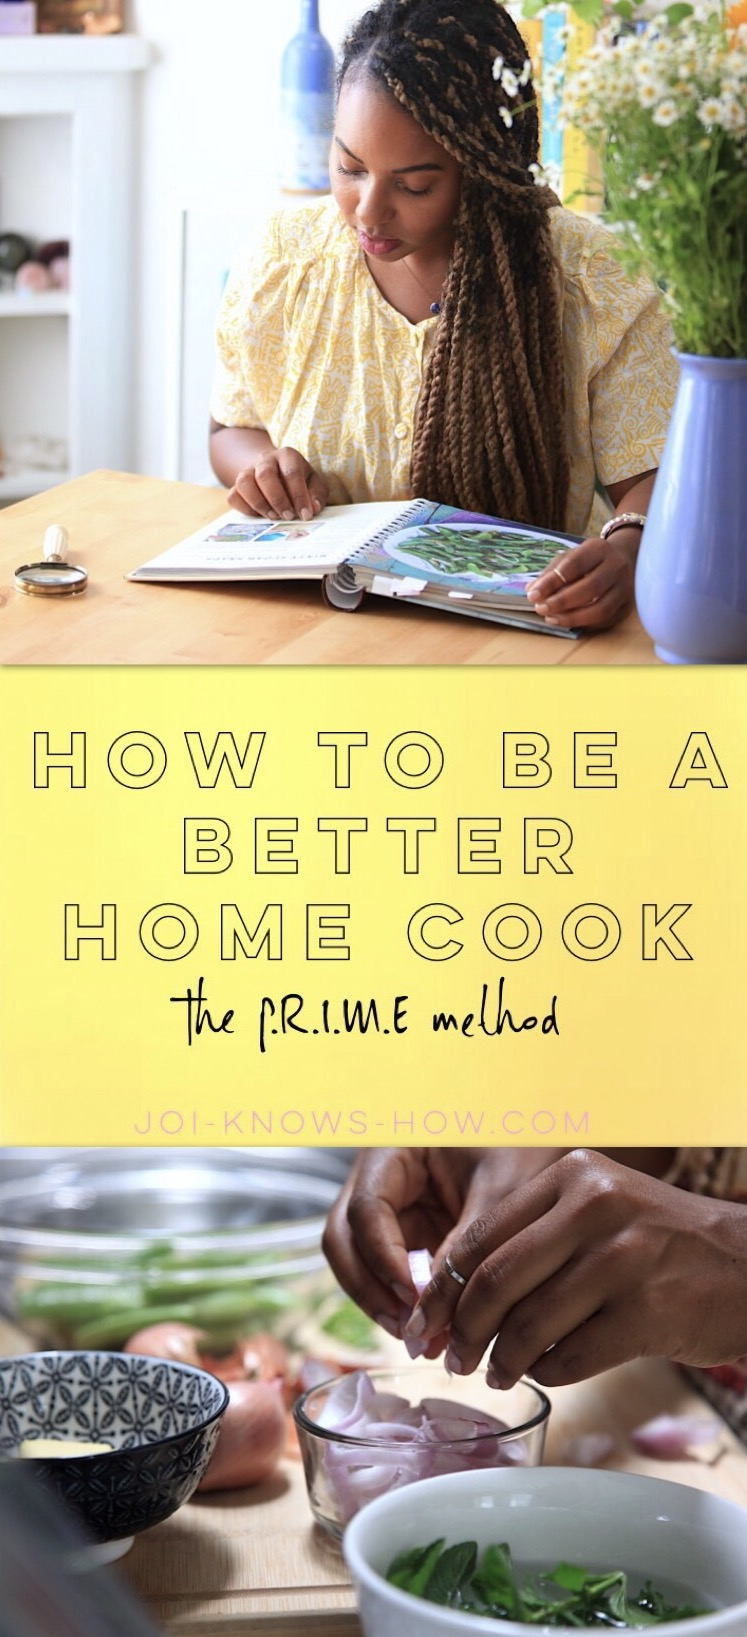 The PRIME Method for Home Cooking